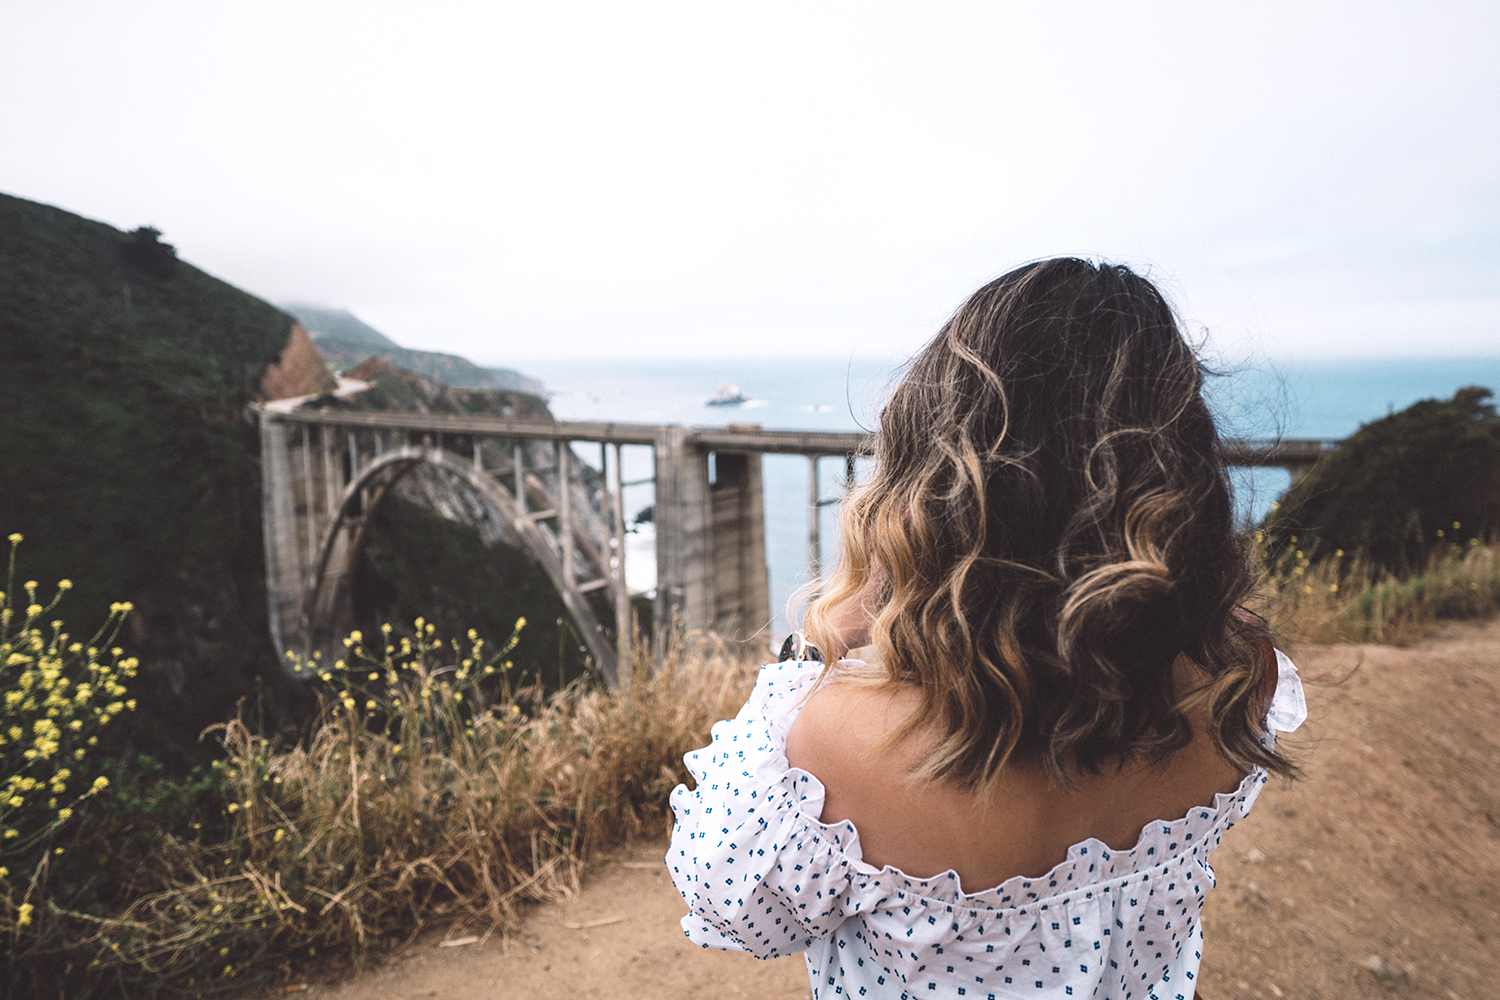 02bigsur-bixbybridge-wanderlust-travel-style-fashion